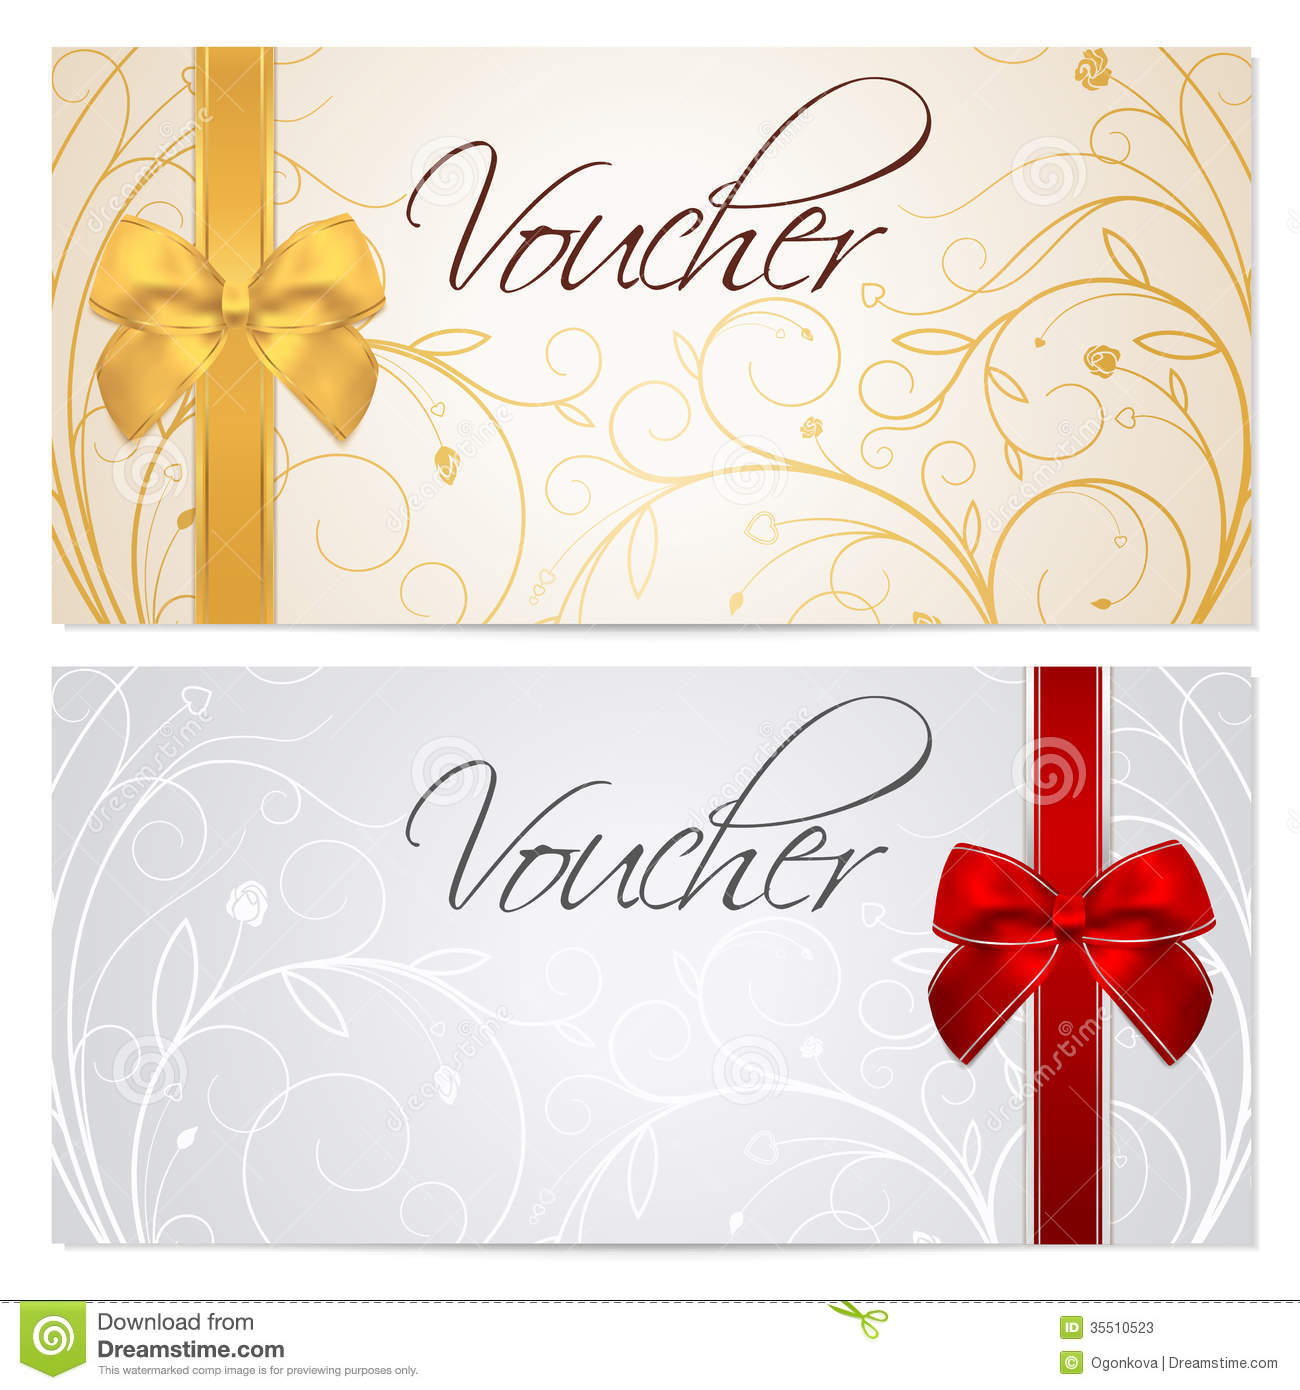 Voucher Gift Certificate Coupon Template Red B Photos – Template for a Voucher